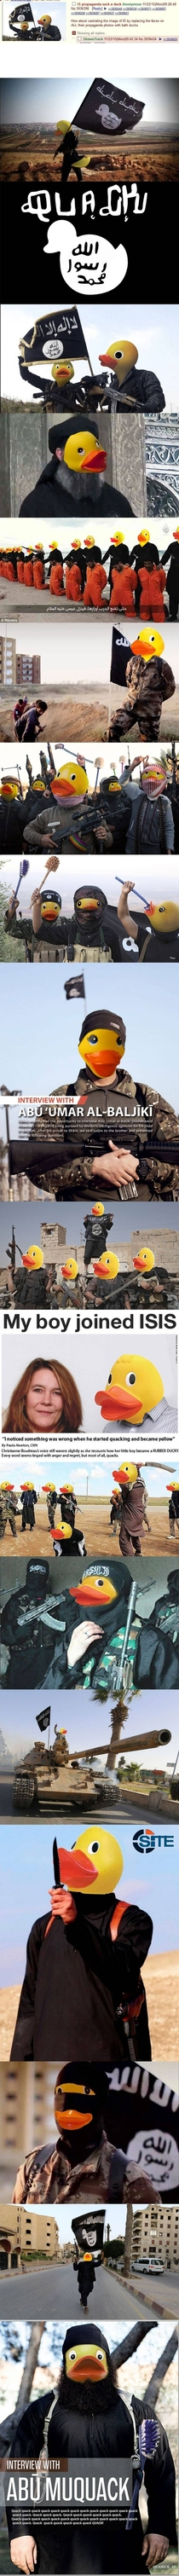 chan Photoshops terrorists into rubber ducks